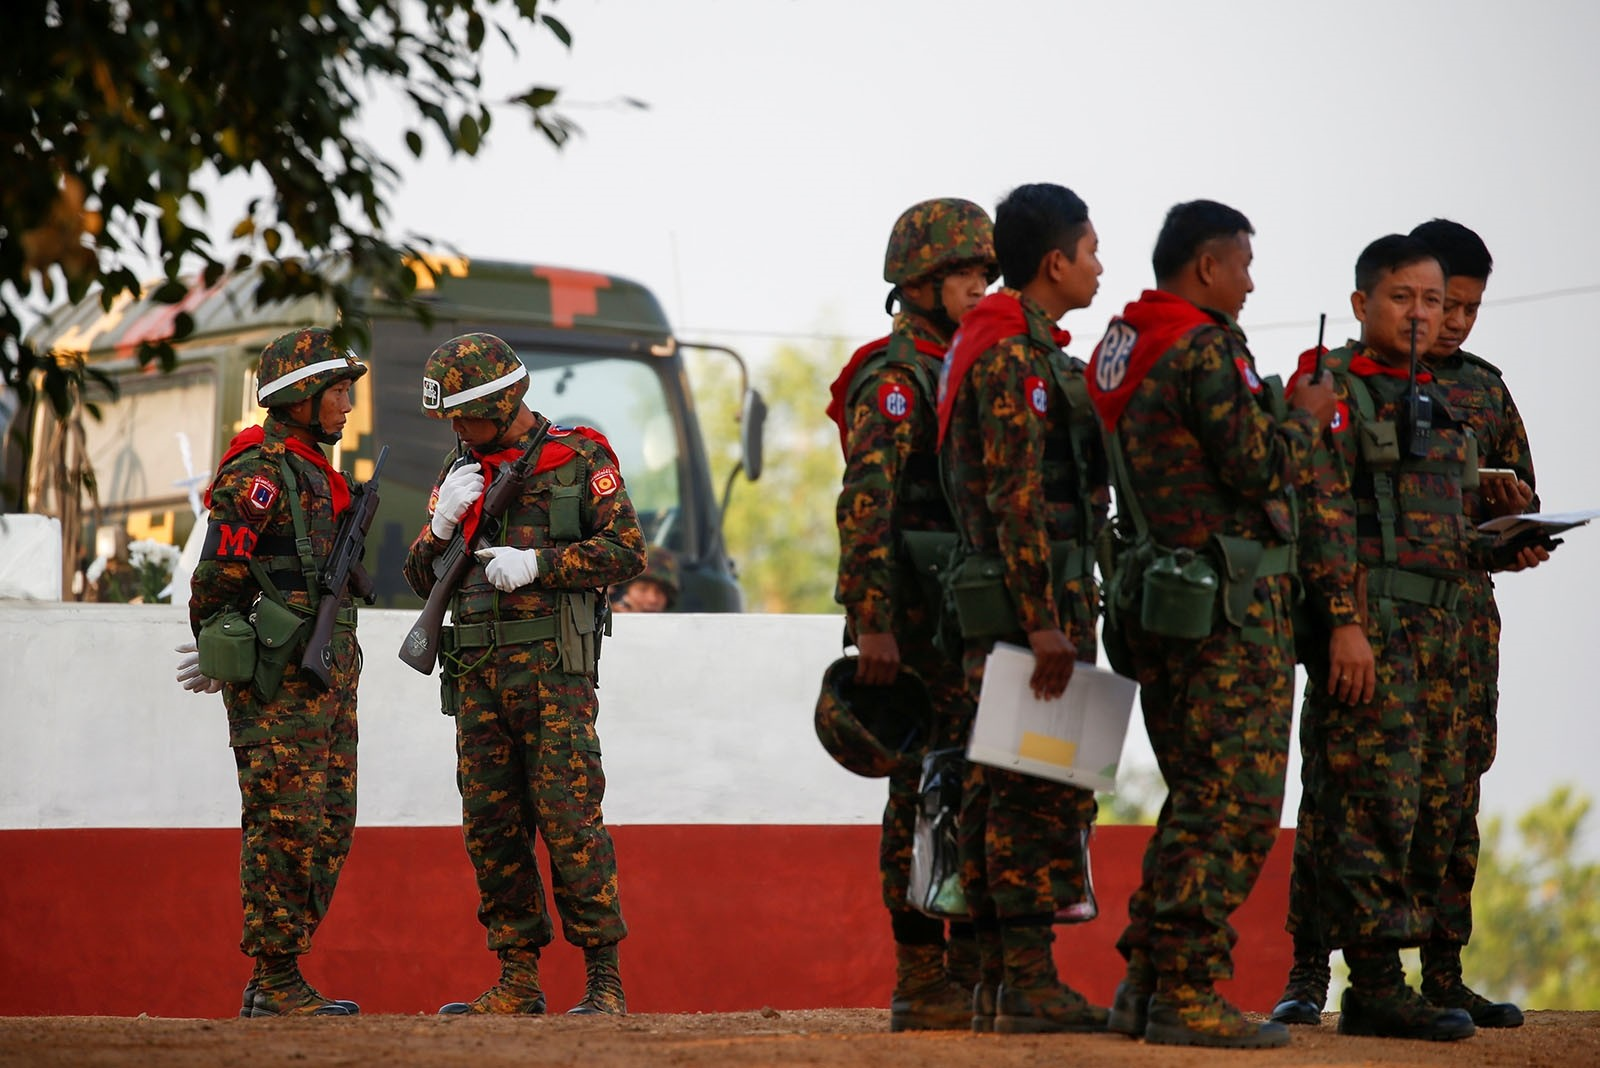 Myanmar military troops take part in a military exercise at Ayeyarwaddy delta region in Myanmar, February 2, 2018.